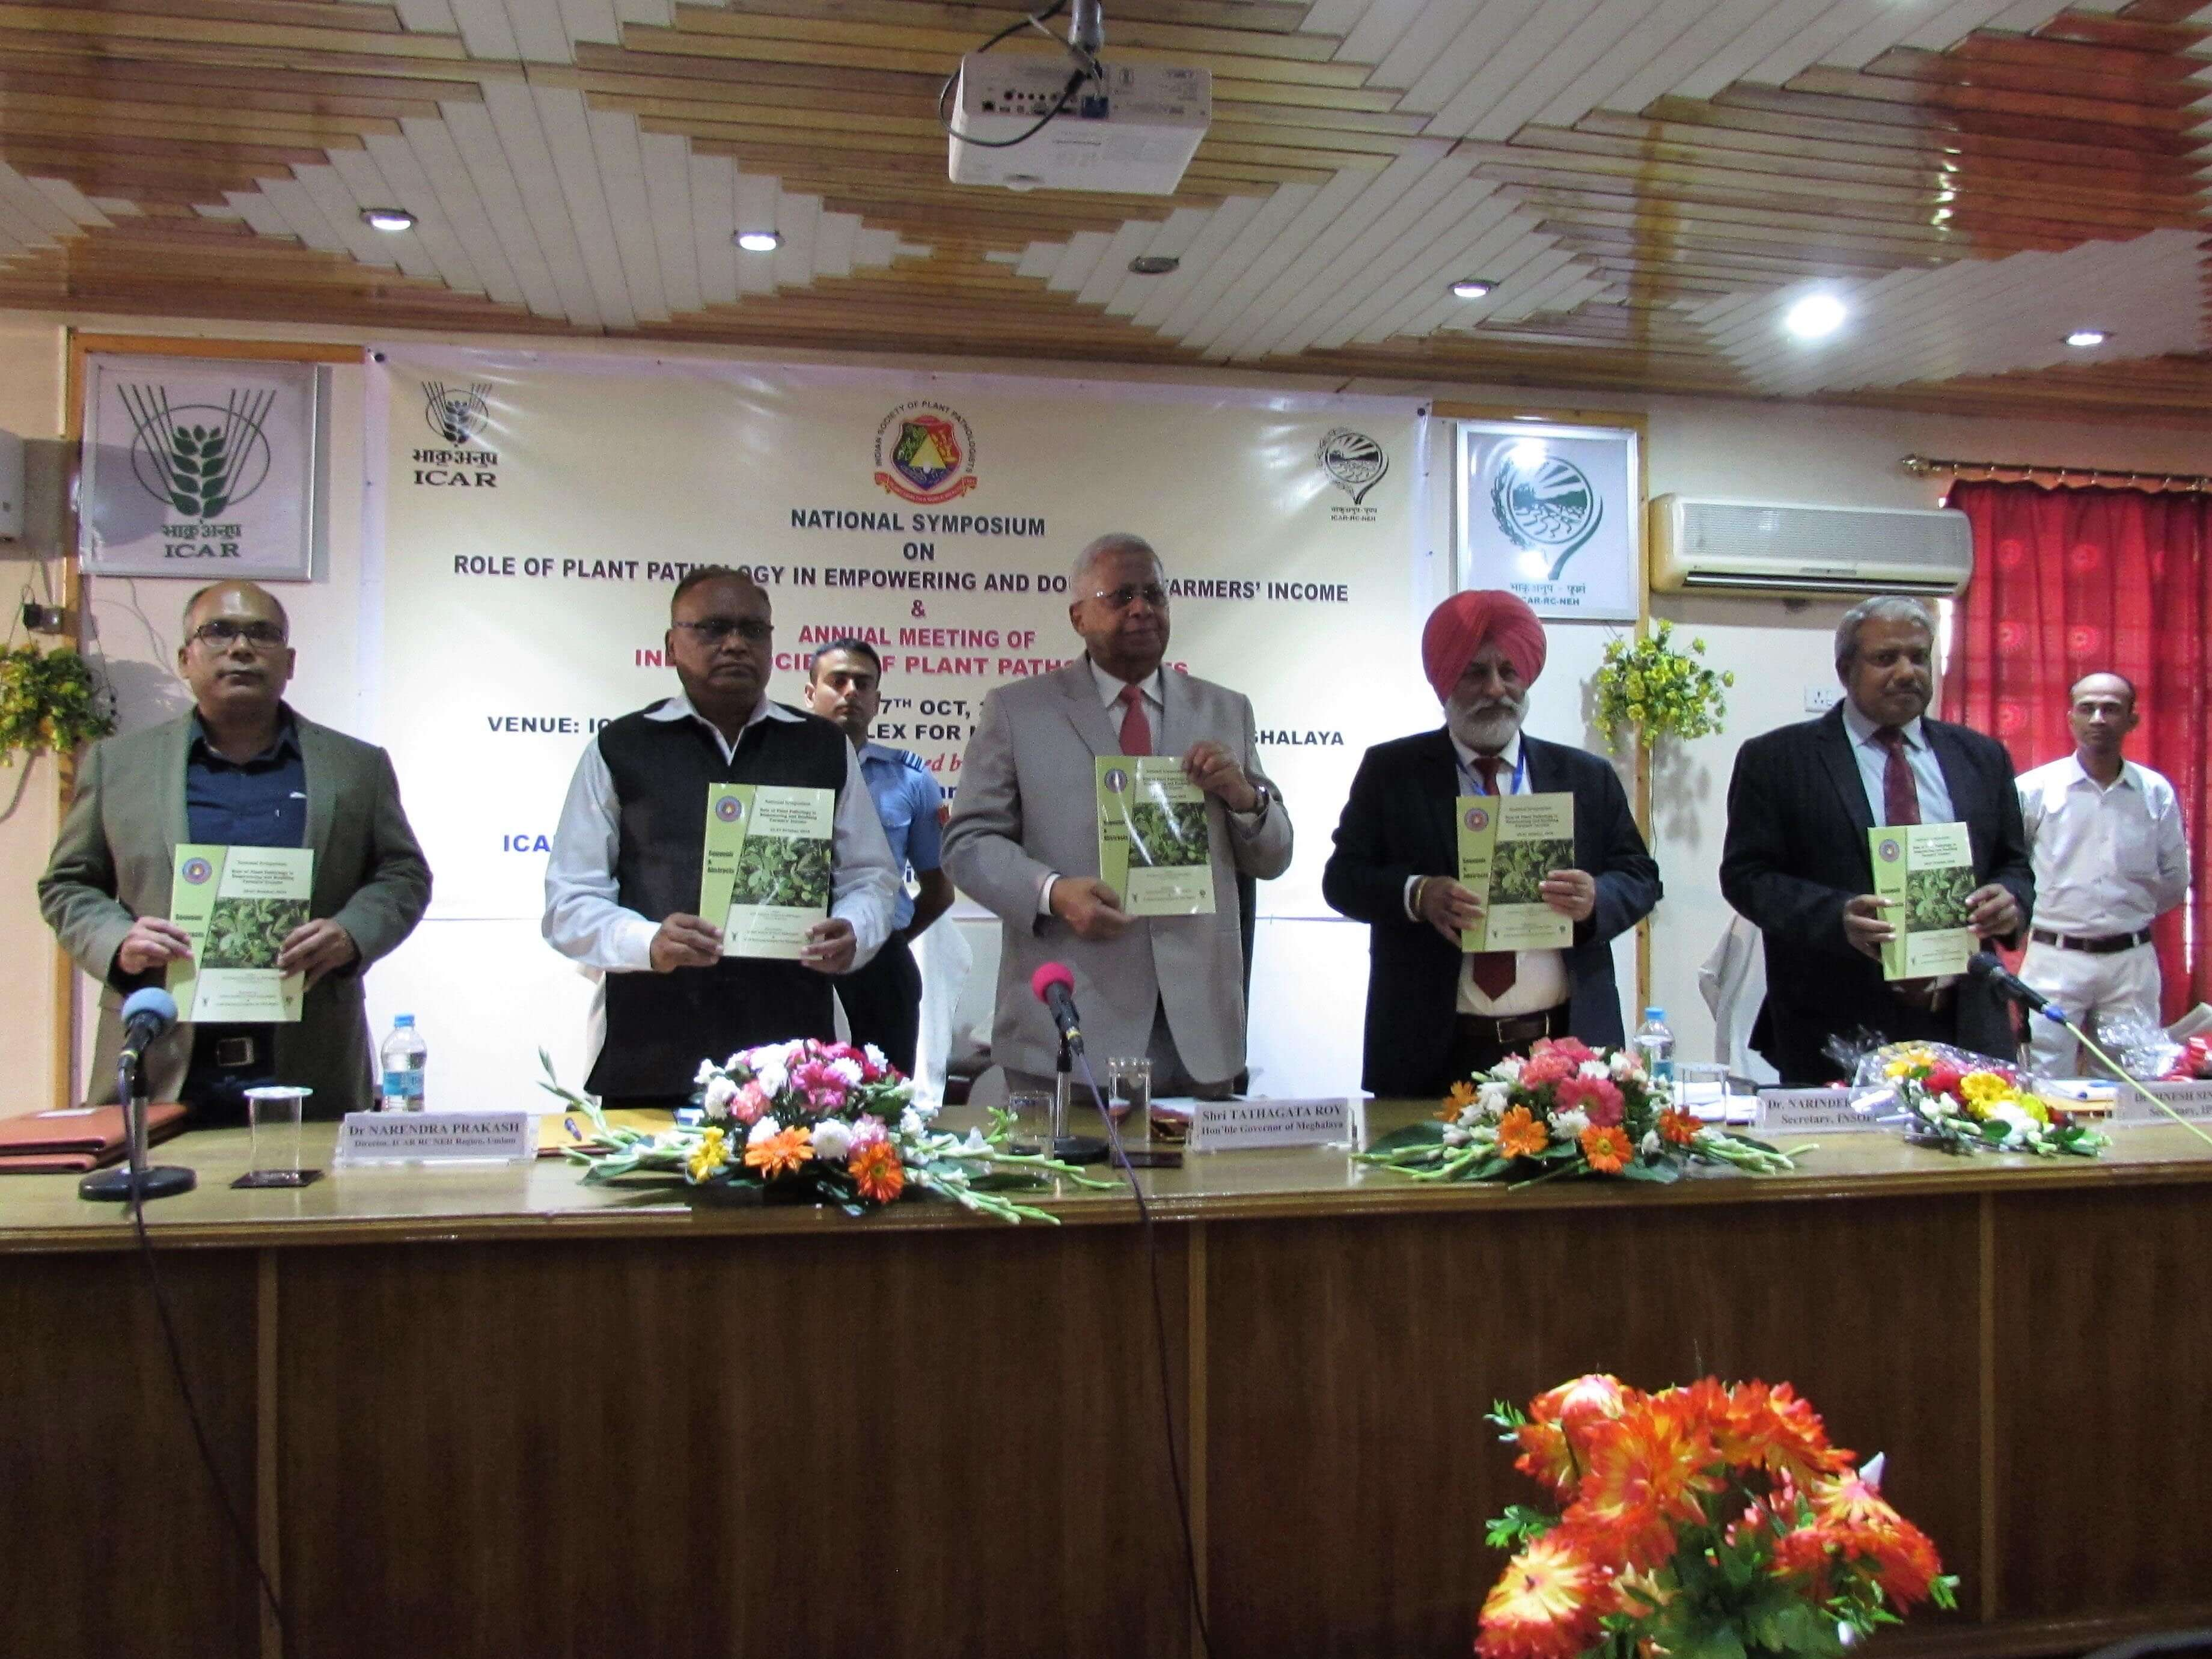 ICAR hosts National Symposium on Boosting Farmers' Income, Shillong